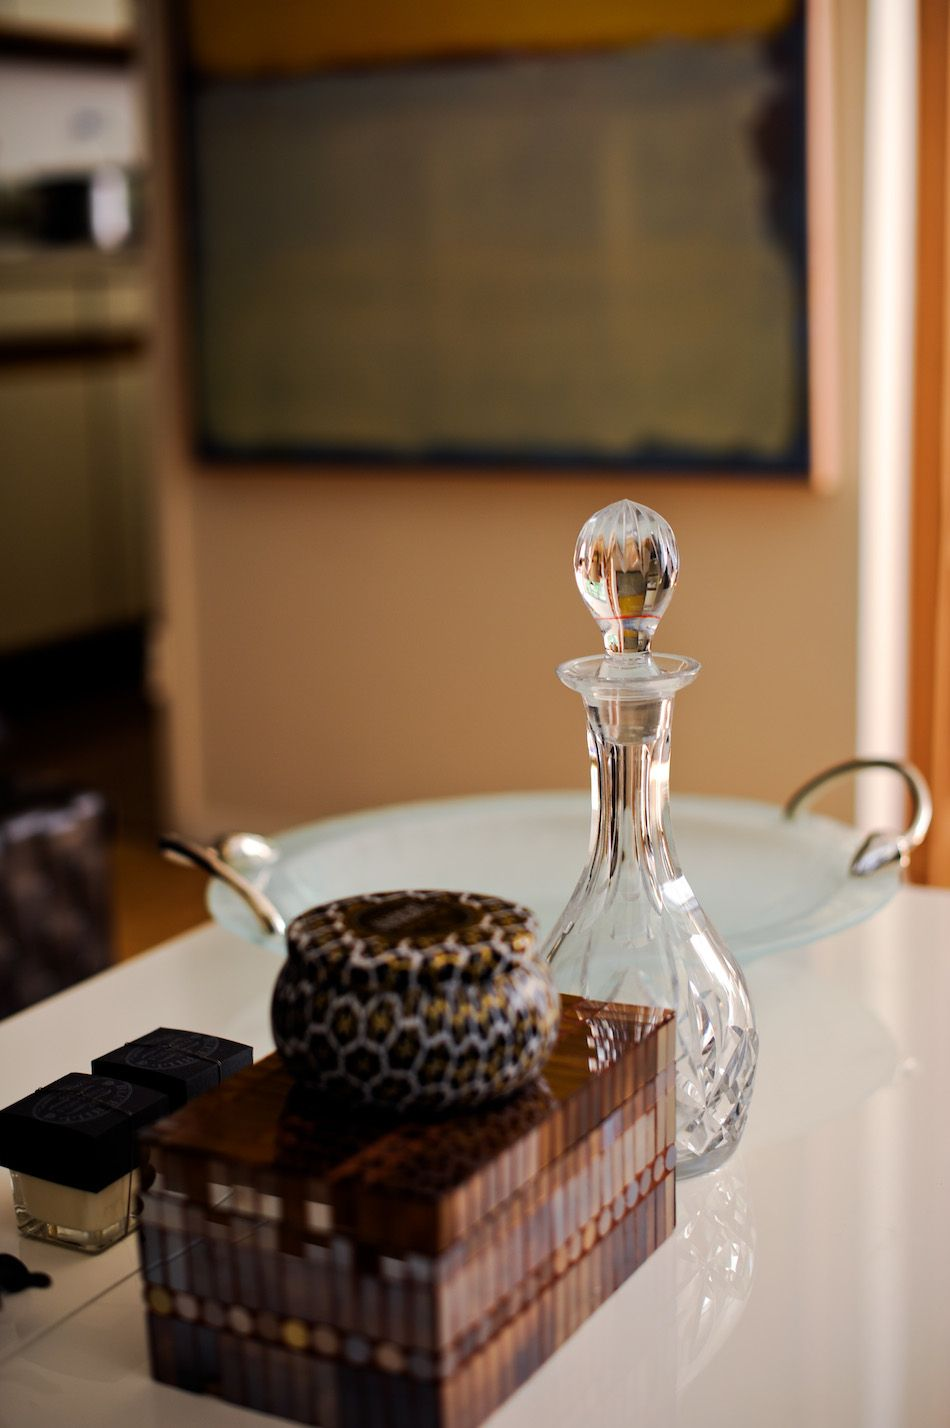 Delightful Coffee Table Accents   Crystal Wine Decanter, Michael Aram Bowl, Volupsa  Candle